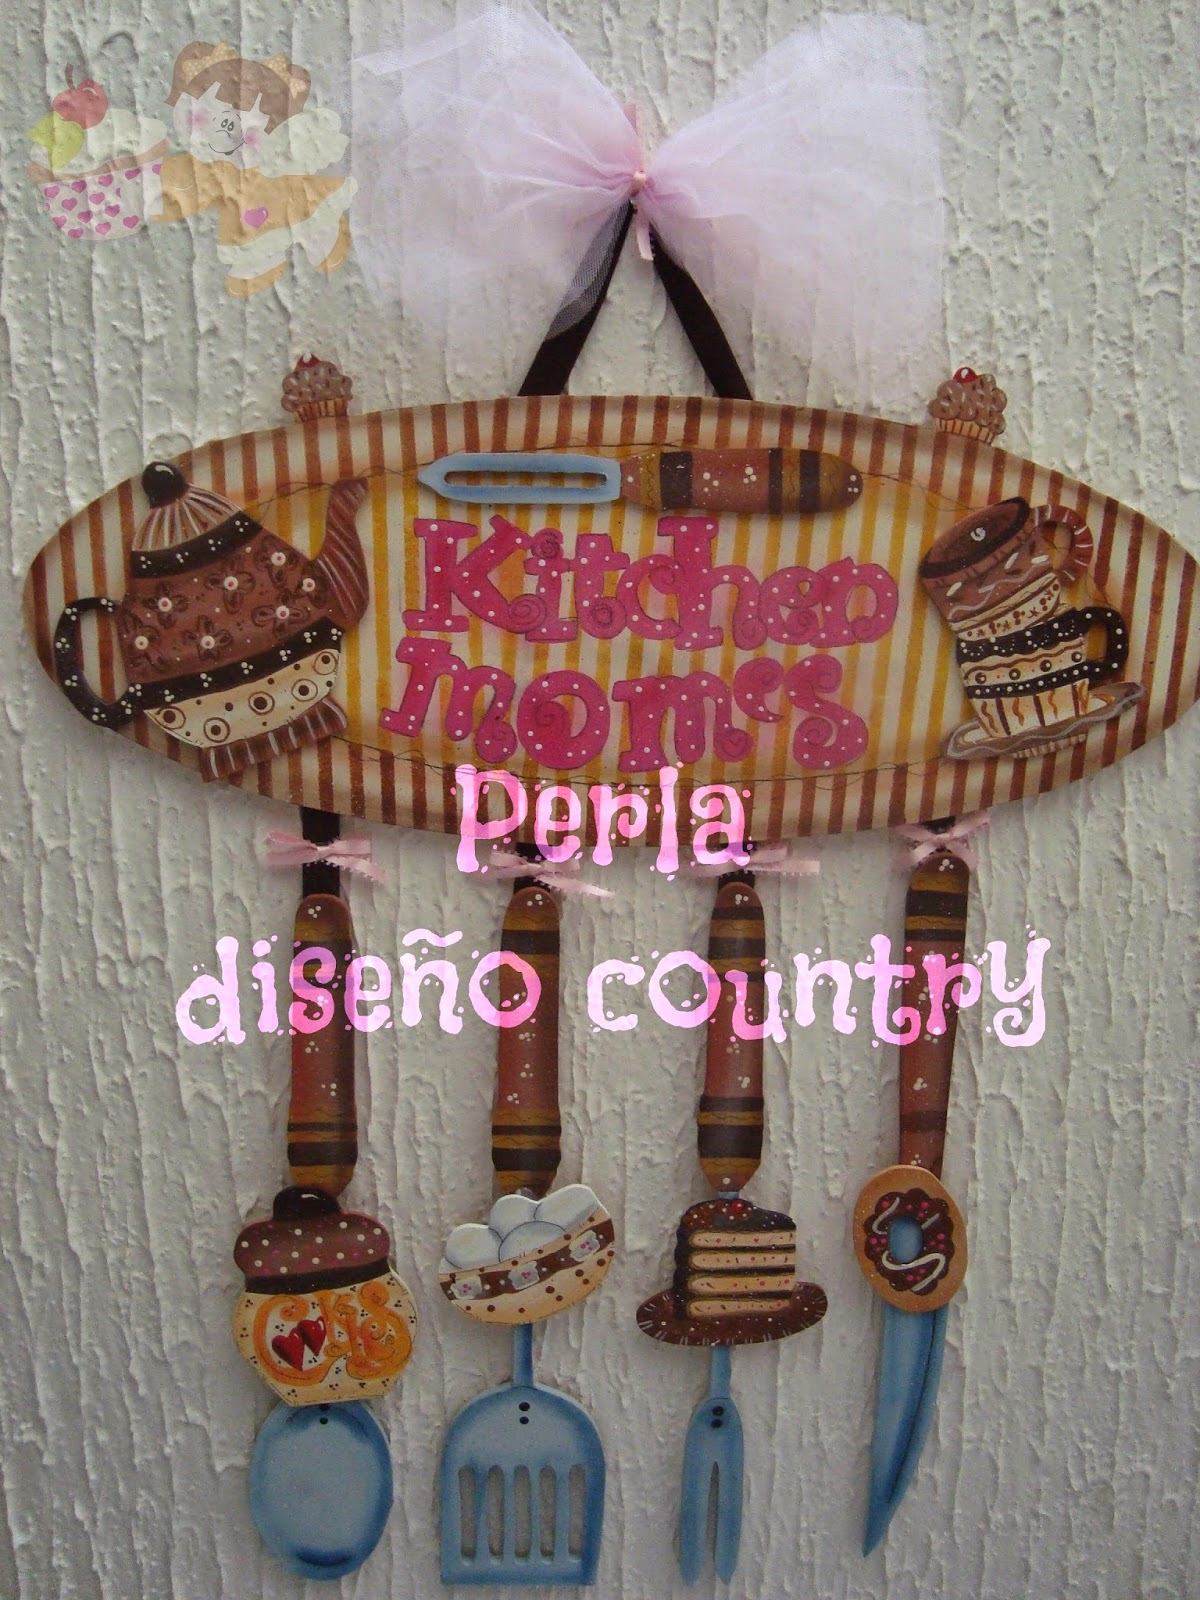 Lovecountrylove Kitchen Moms Madera Country